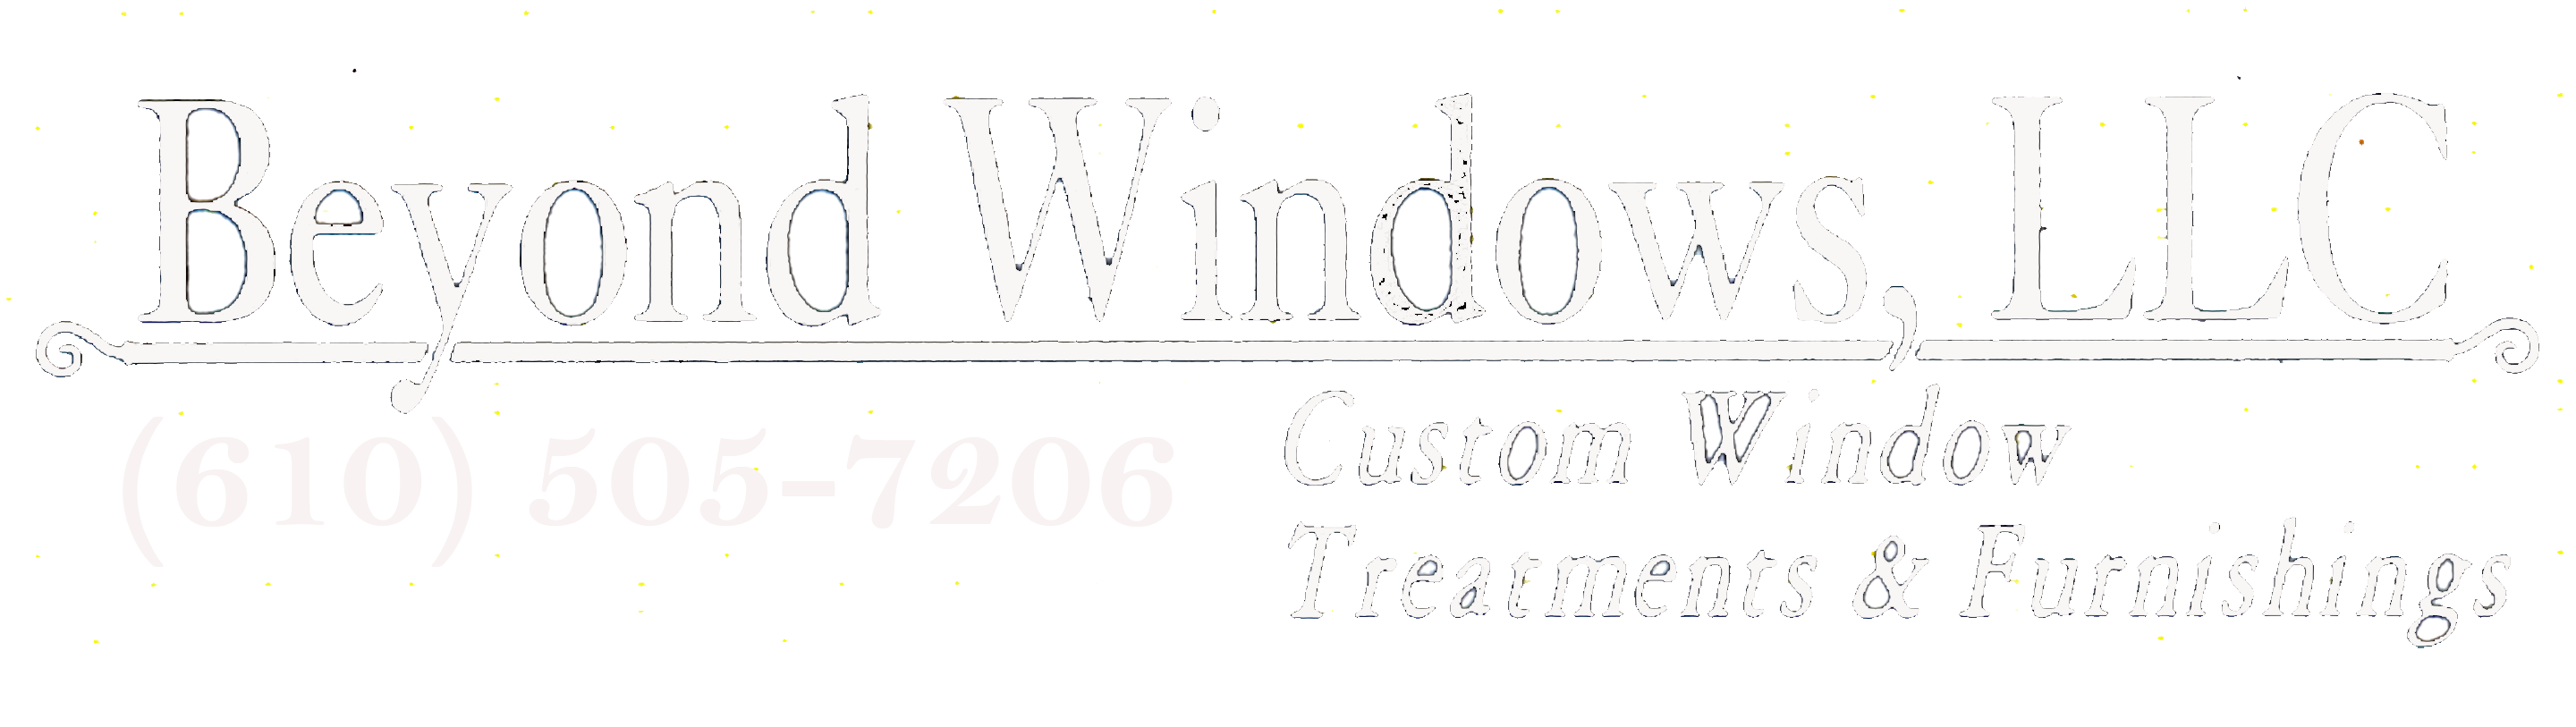 Beyond Windows, LLC